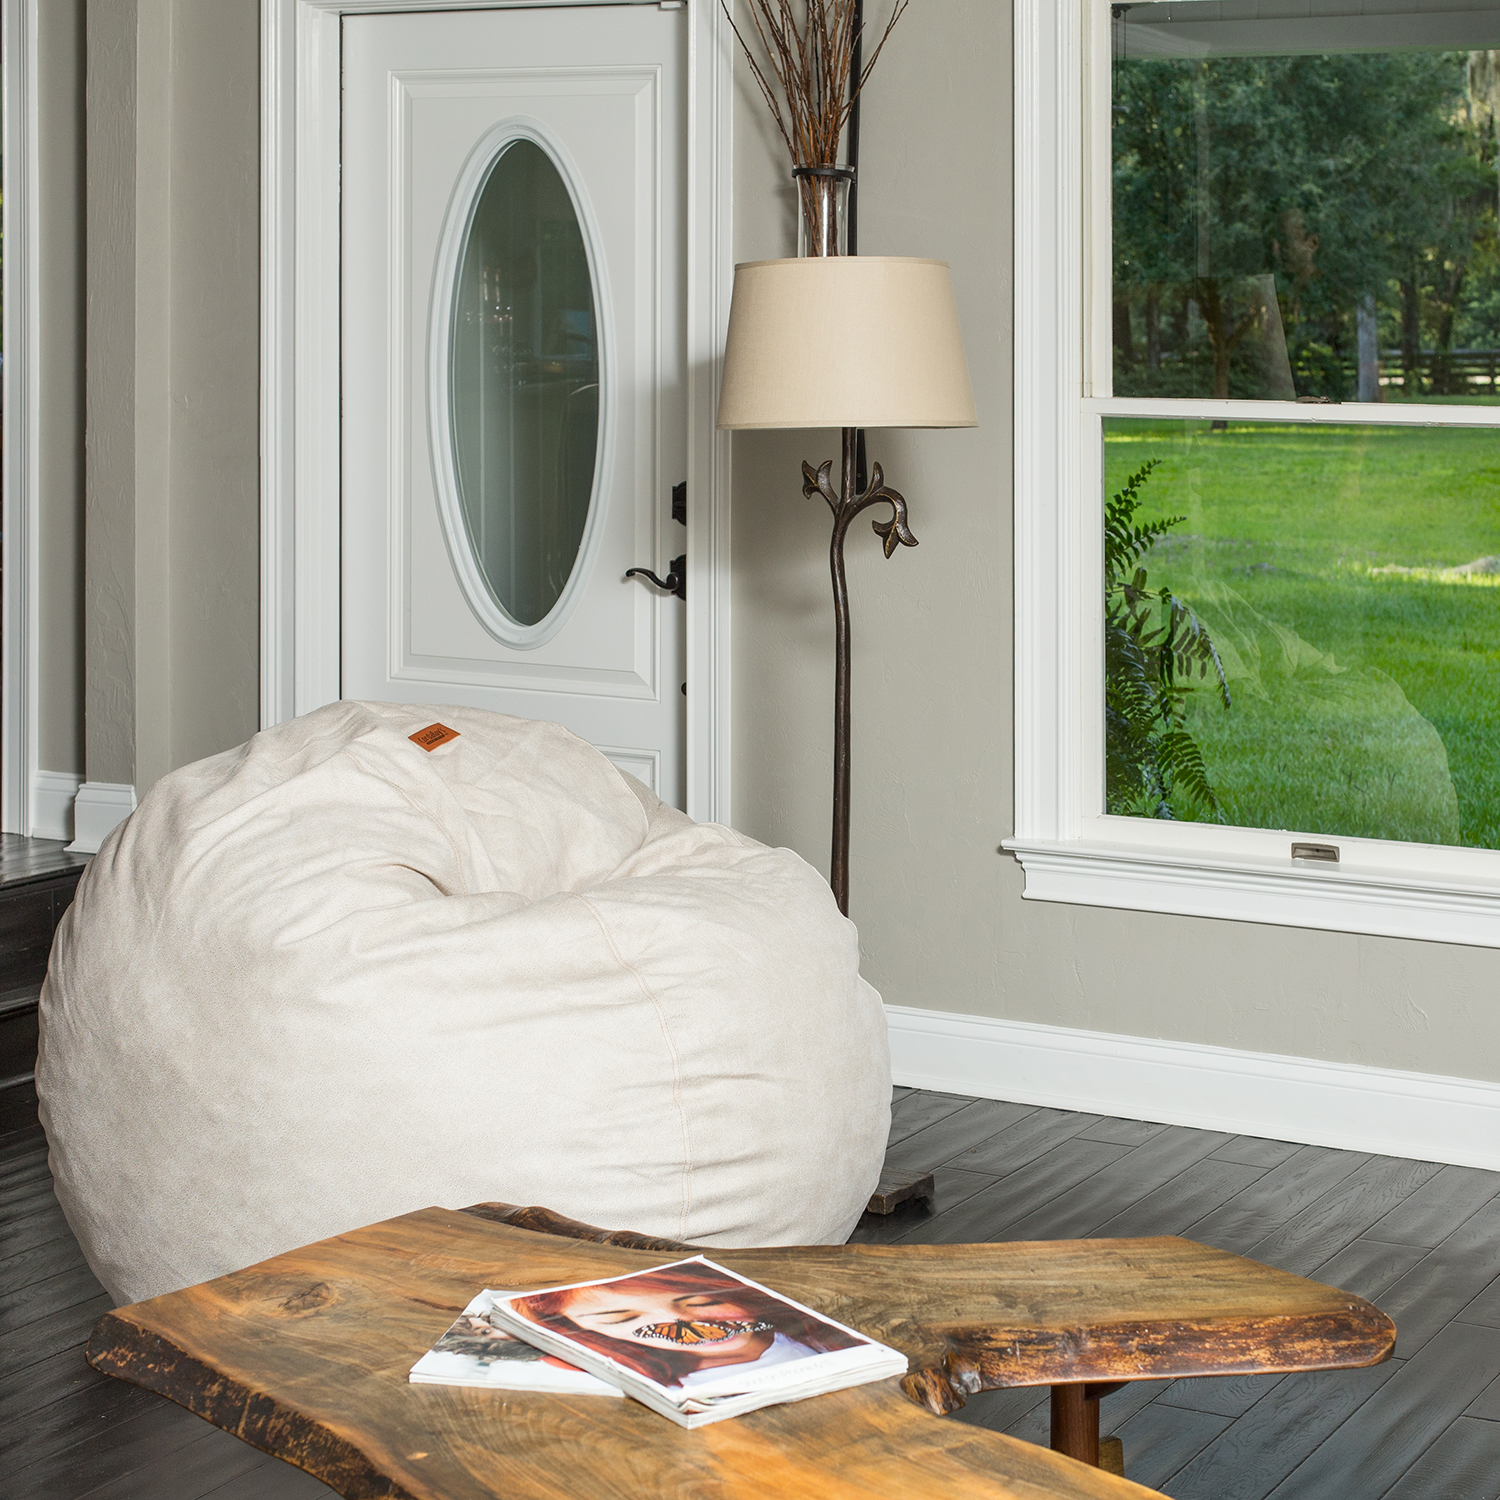 Marvelous Cowhide Bean Bag Chair All About Cow Photos Ibusinesslaw Wood Chair Design Ideas Ibusinesslaworg